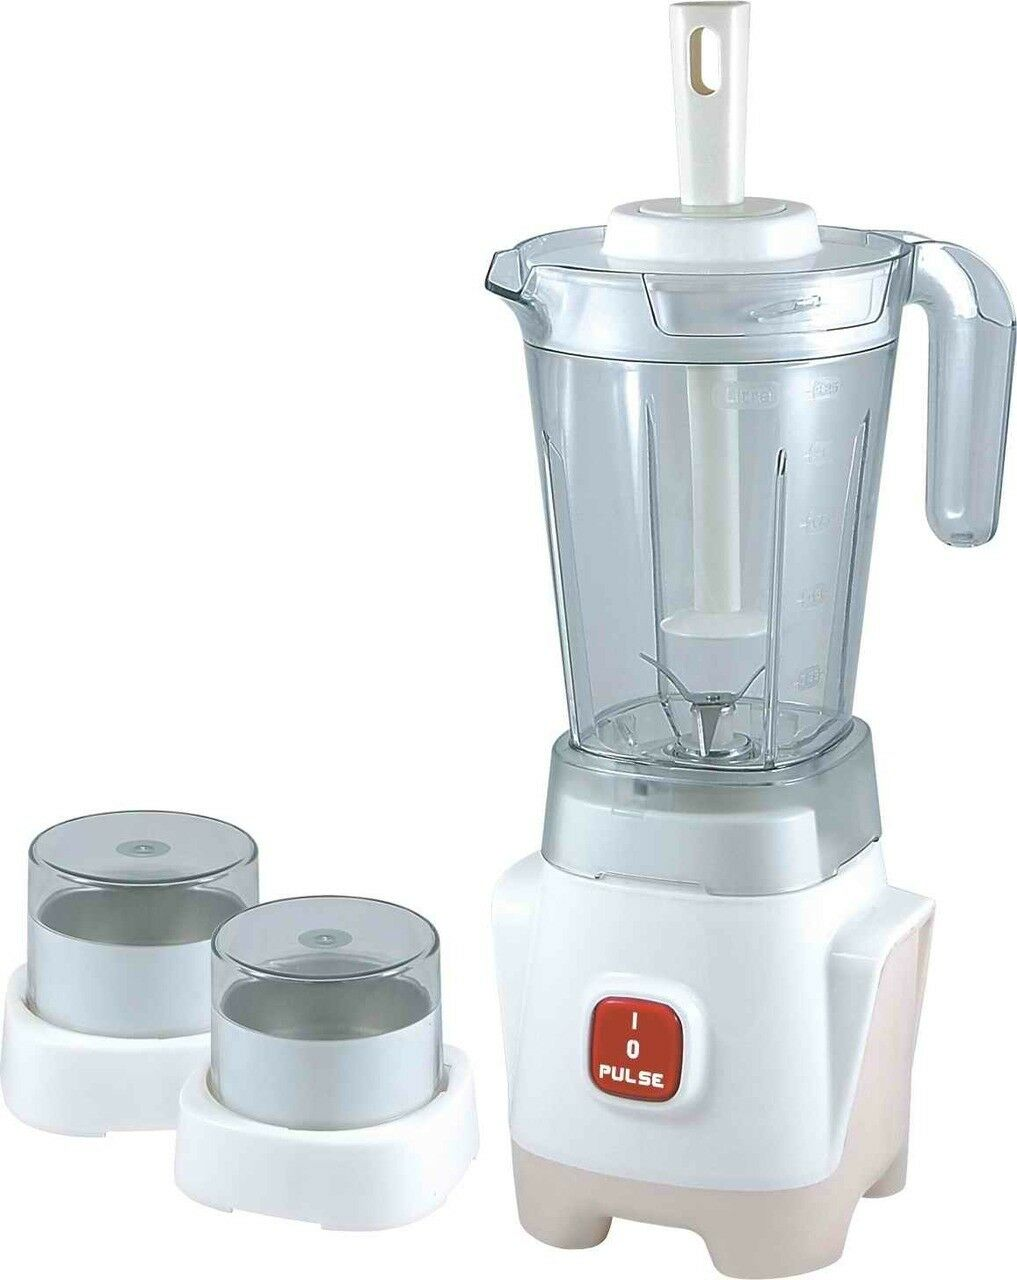 Moulinex LM242 Table Top Blender With Mill & Grater Christmas Gift Idea Her Him